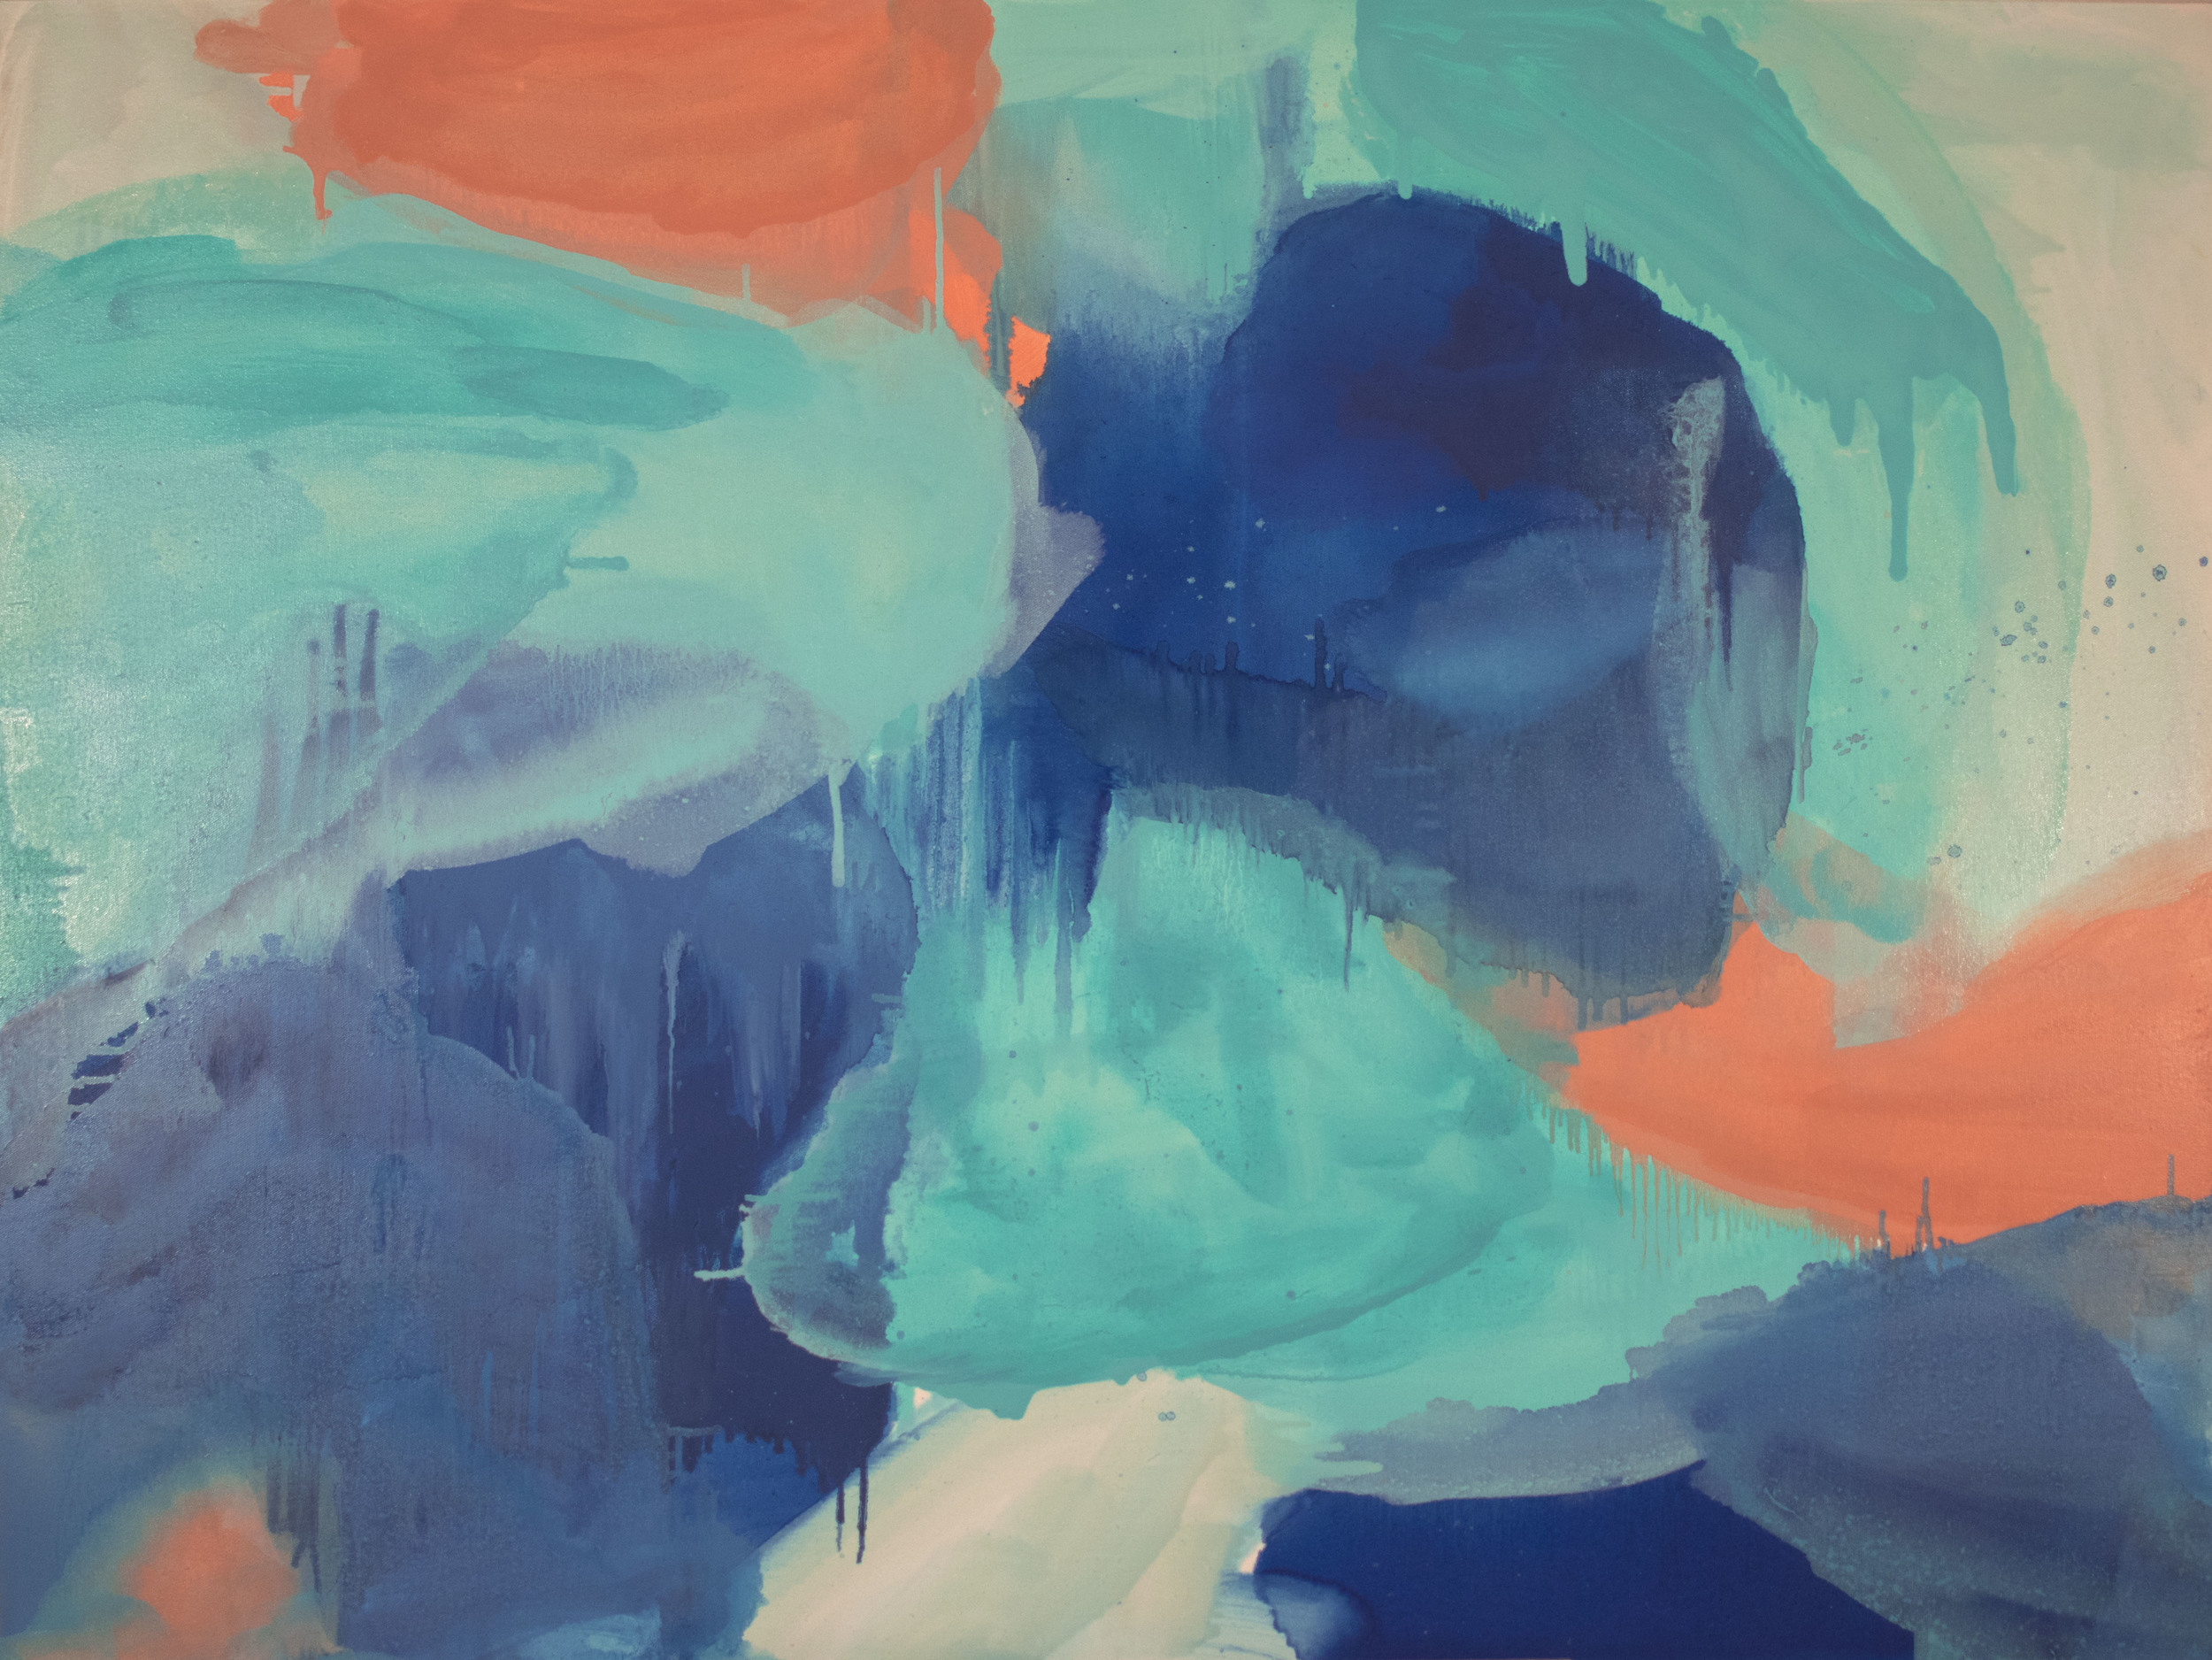 Pools , 2014, oil on canvas, 36 x 48 inches.